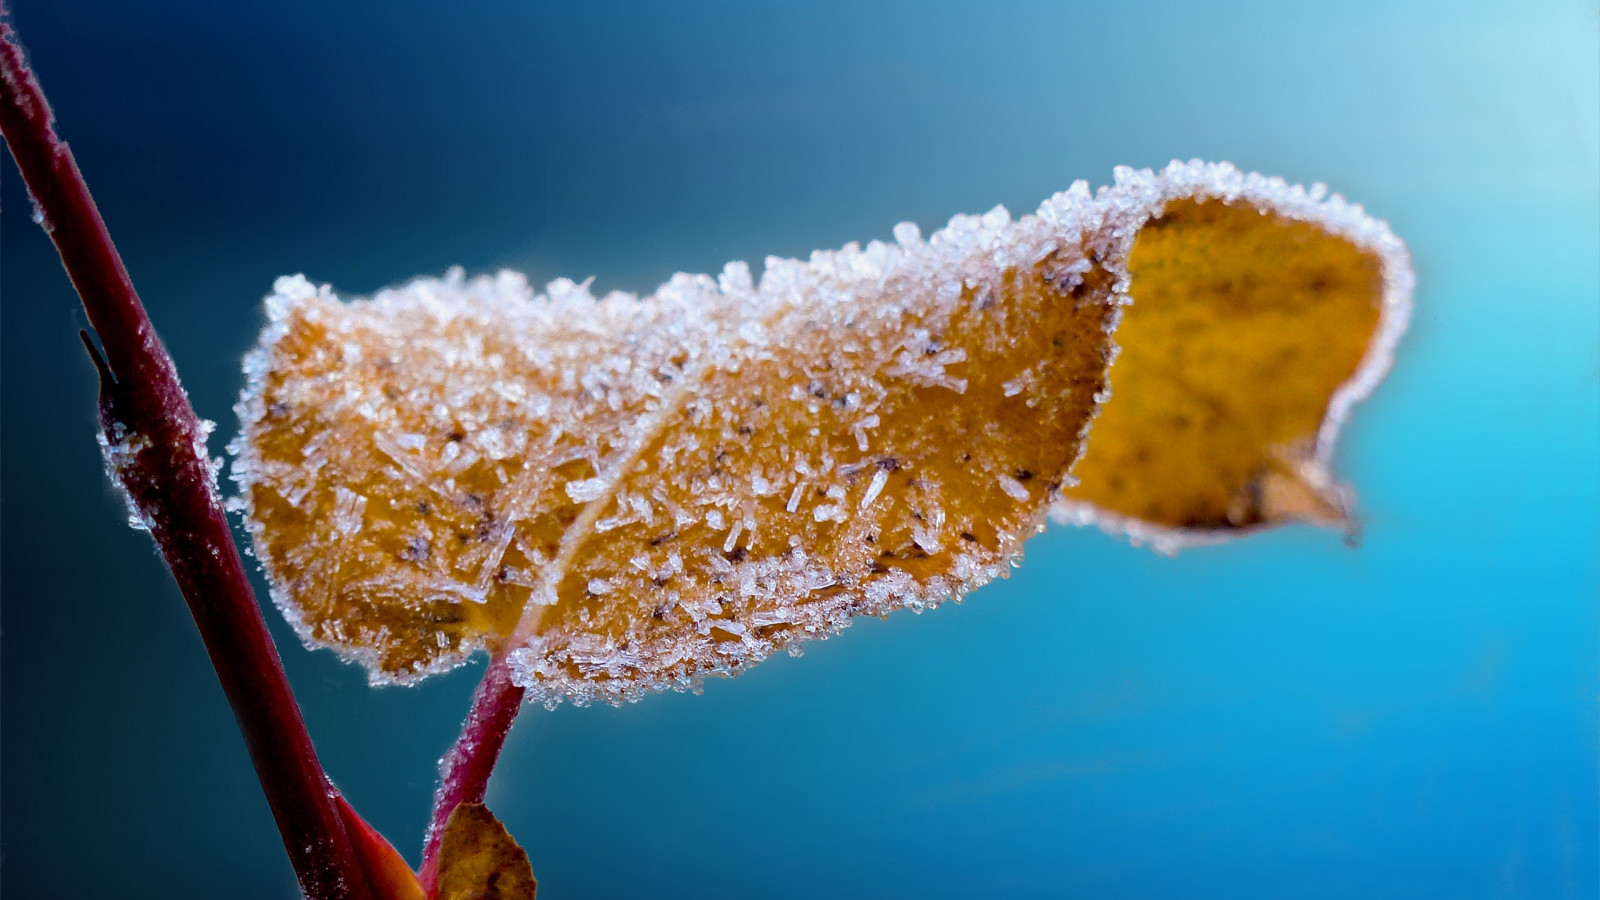 Frosted leaf | 1600x900 wallpaper